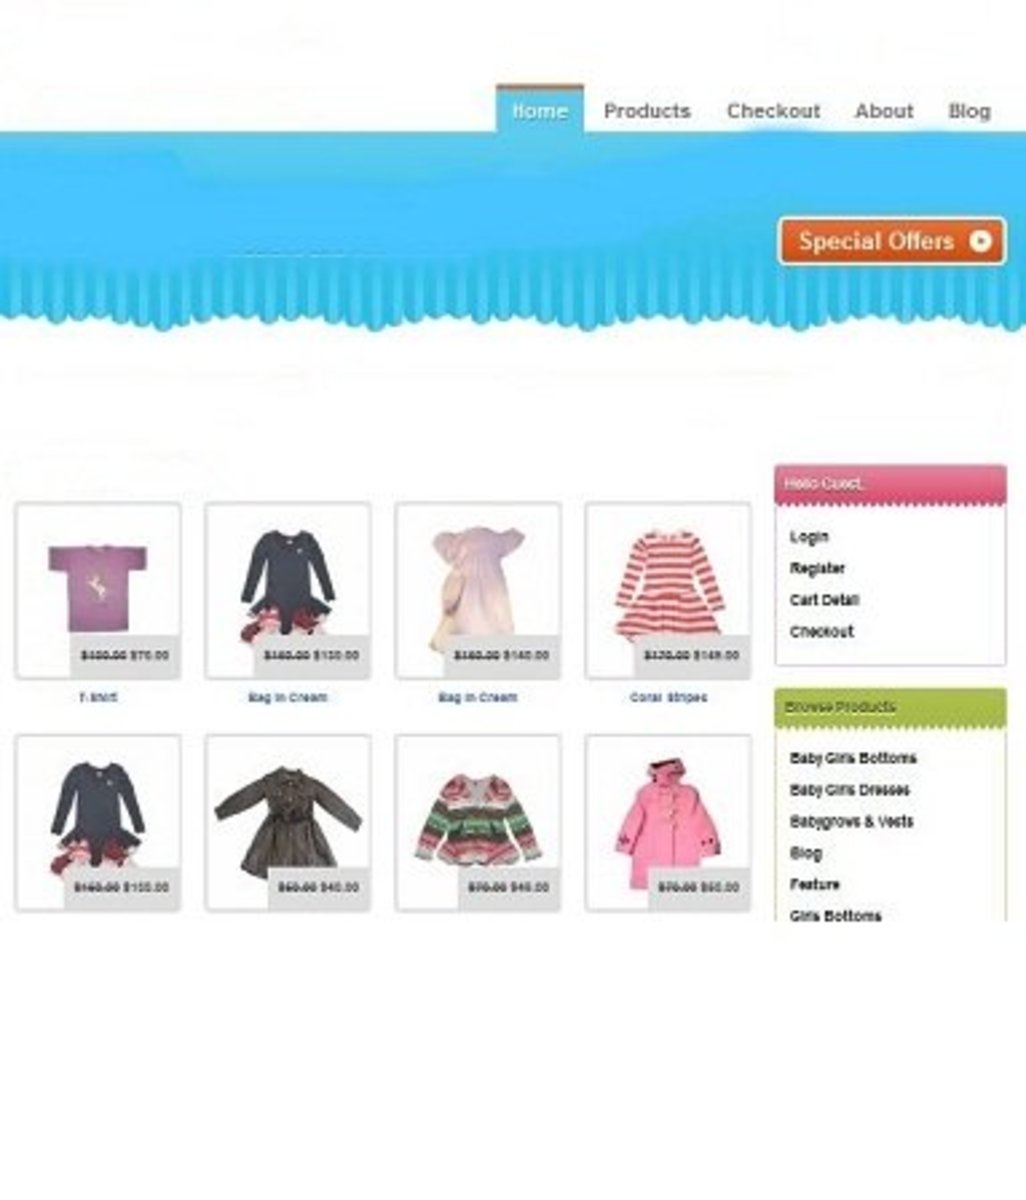 Displayed Products On An Online Shop